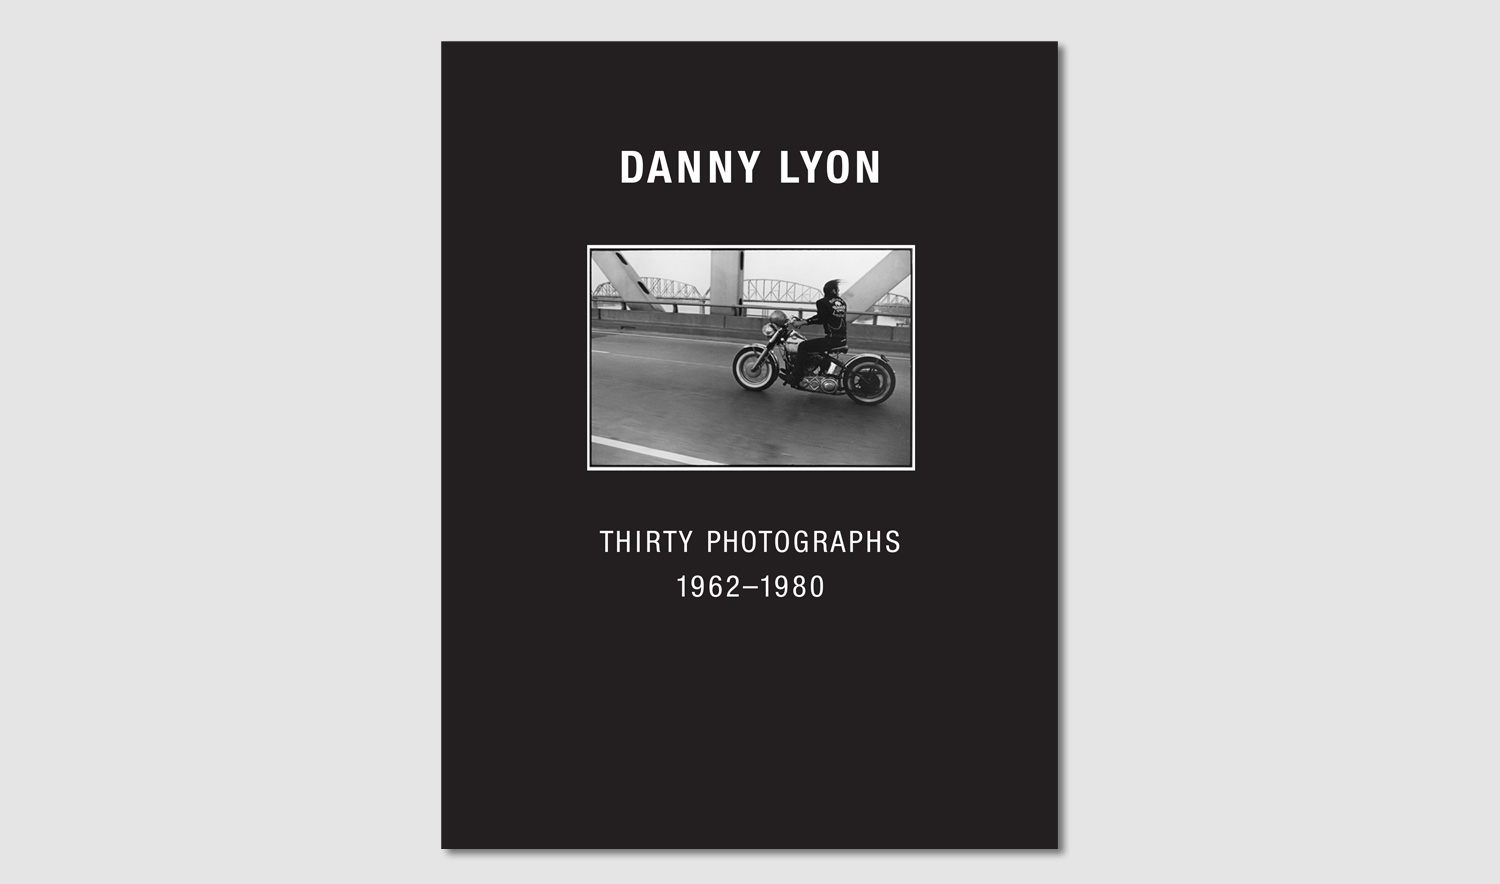 Danny Lyon - Thirty Photographs